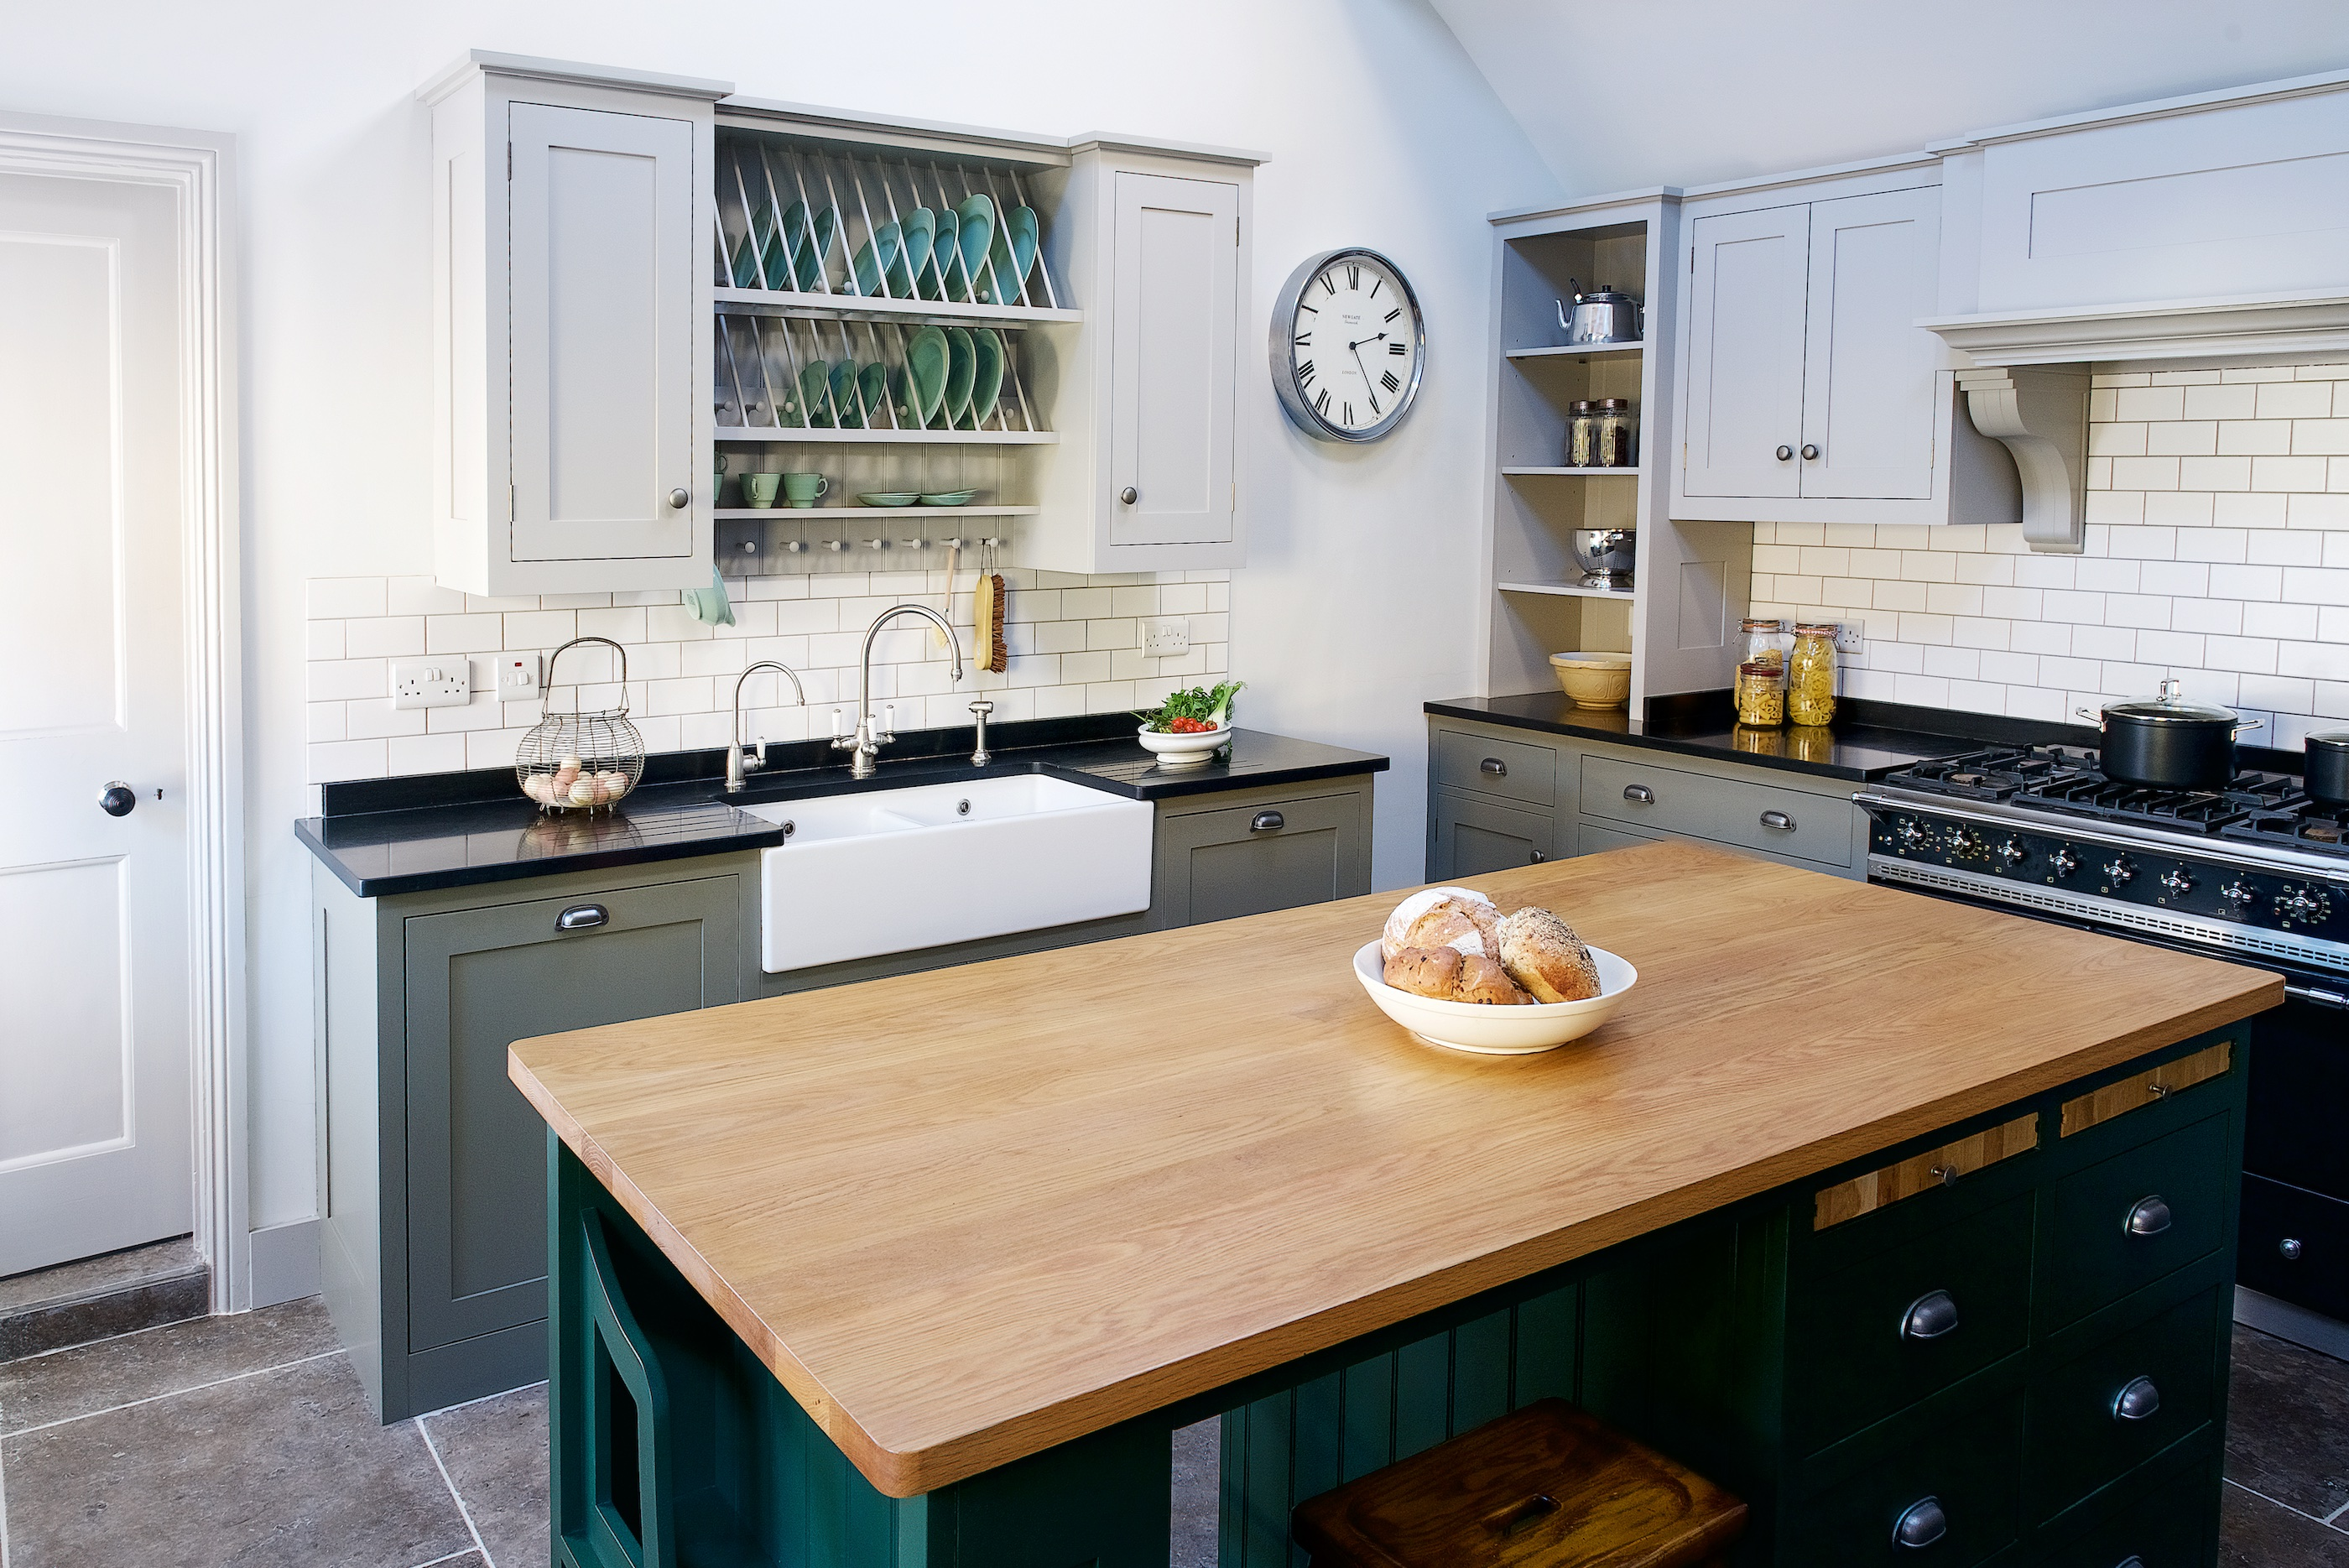 Bespoke shaker kitchen handpainted in Little Greene with a large island with oak worktop and white metro tile splashaback.